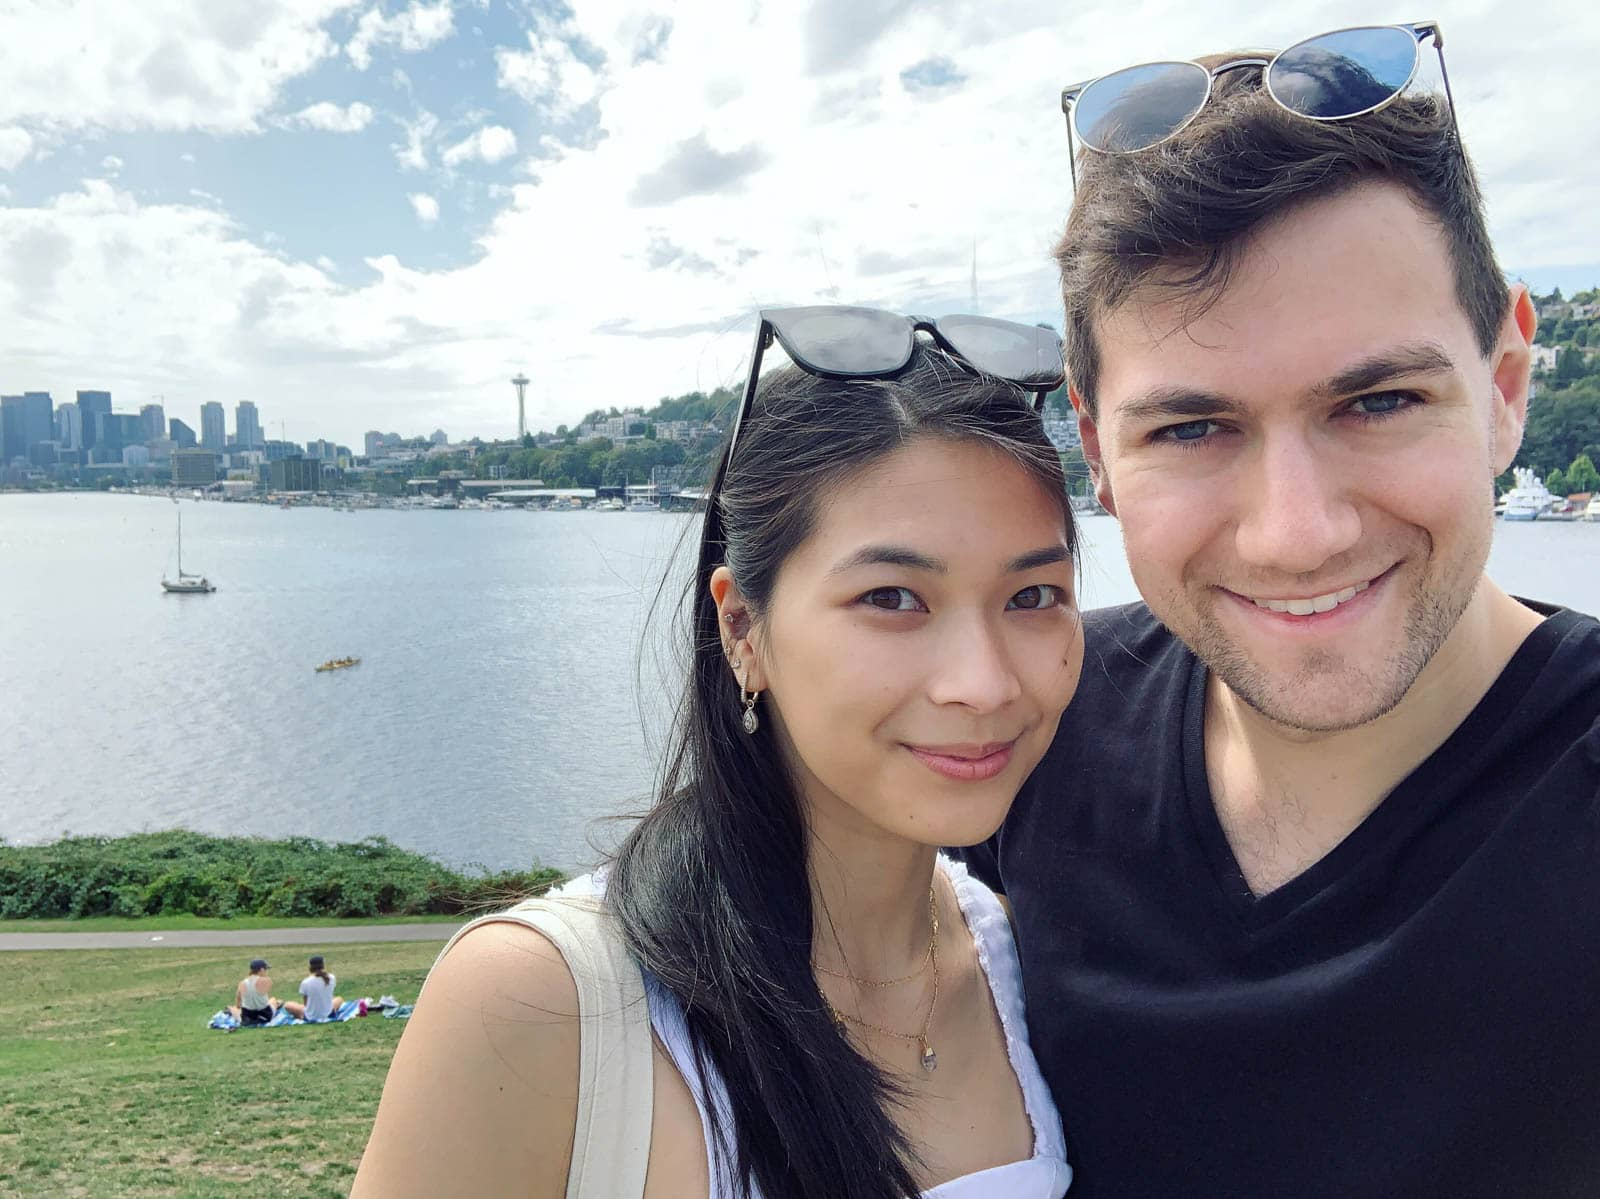 A selfie of a man and woman, with a large lake and a city skyline in the background. There is a couple sitting on the grass behind them. The man and woman have sunglasses on top of their heads and are smiling.